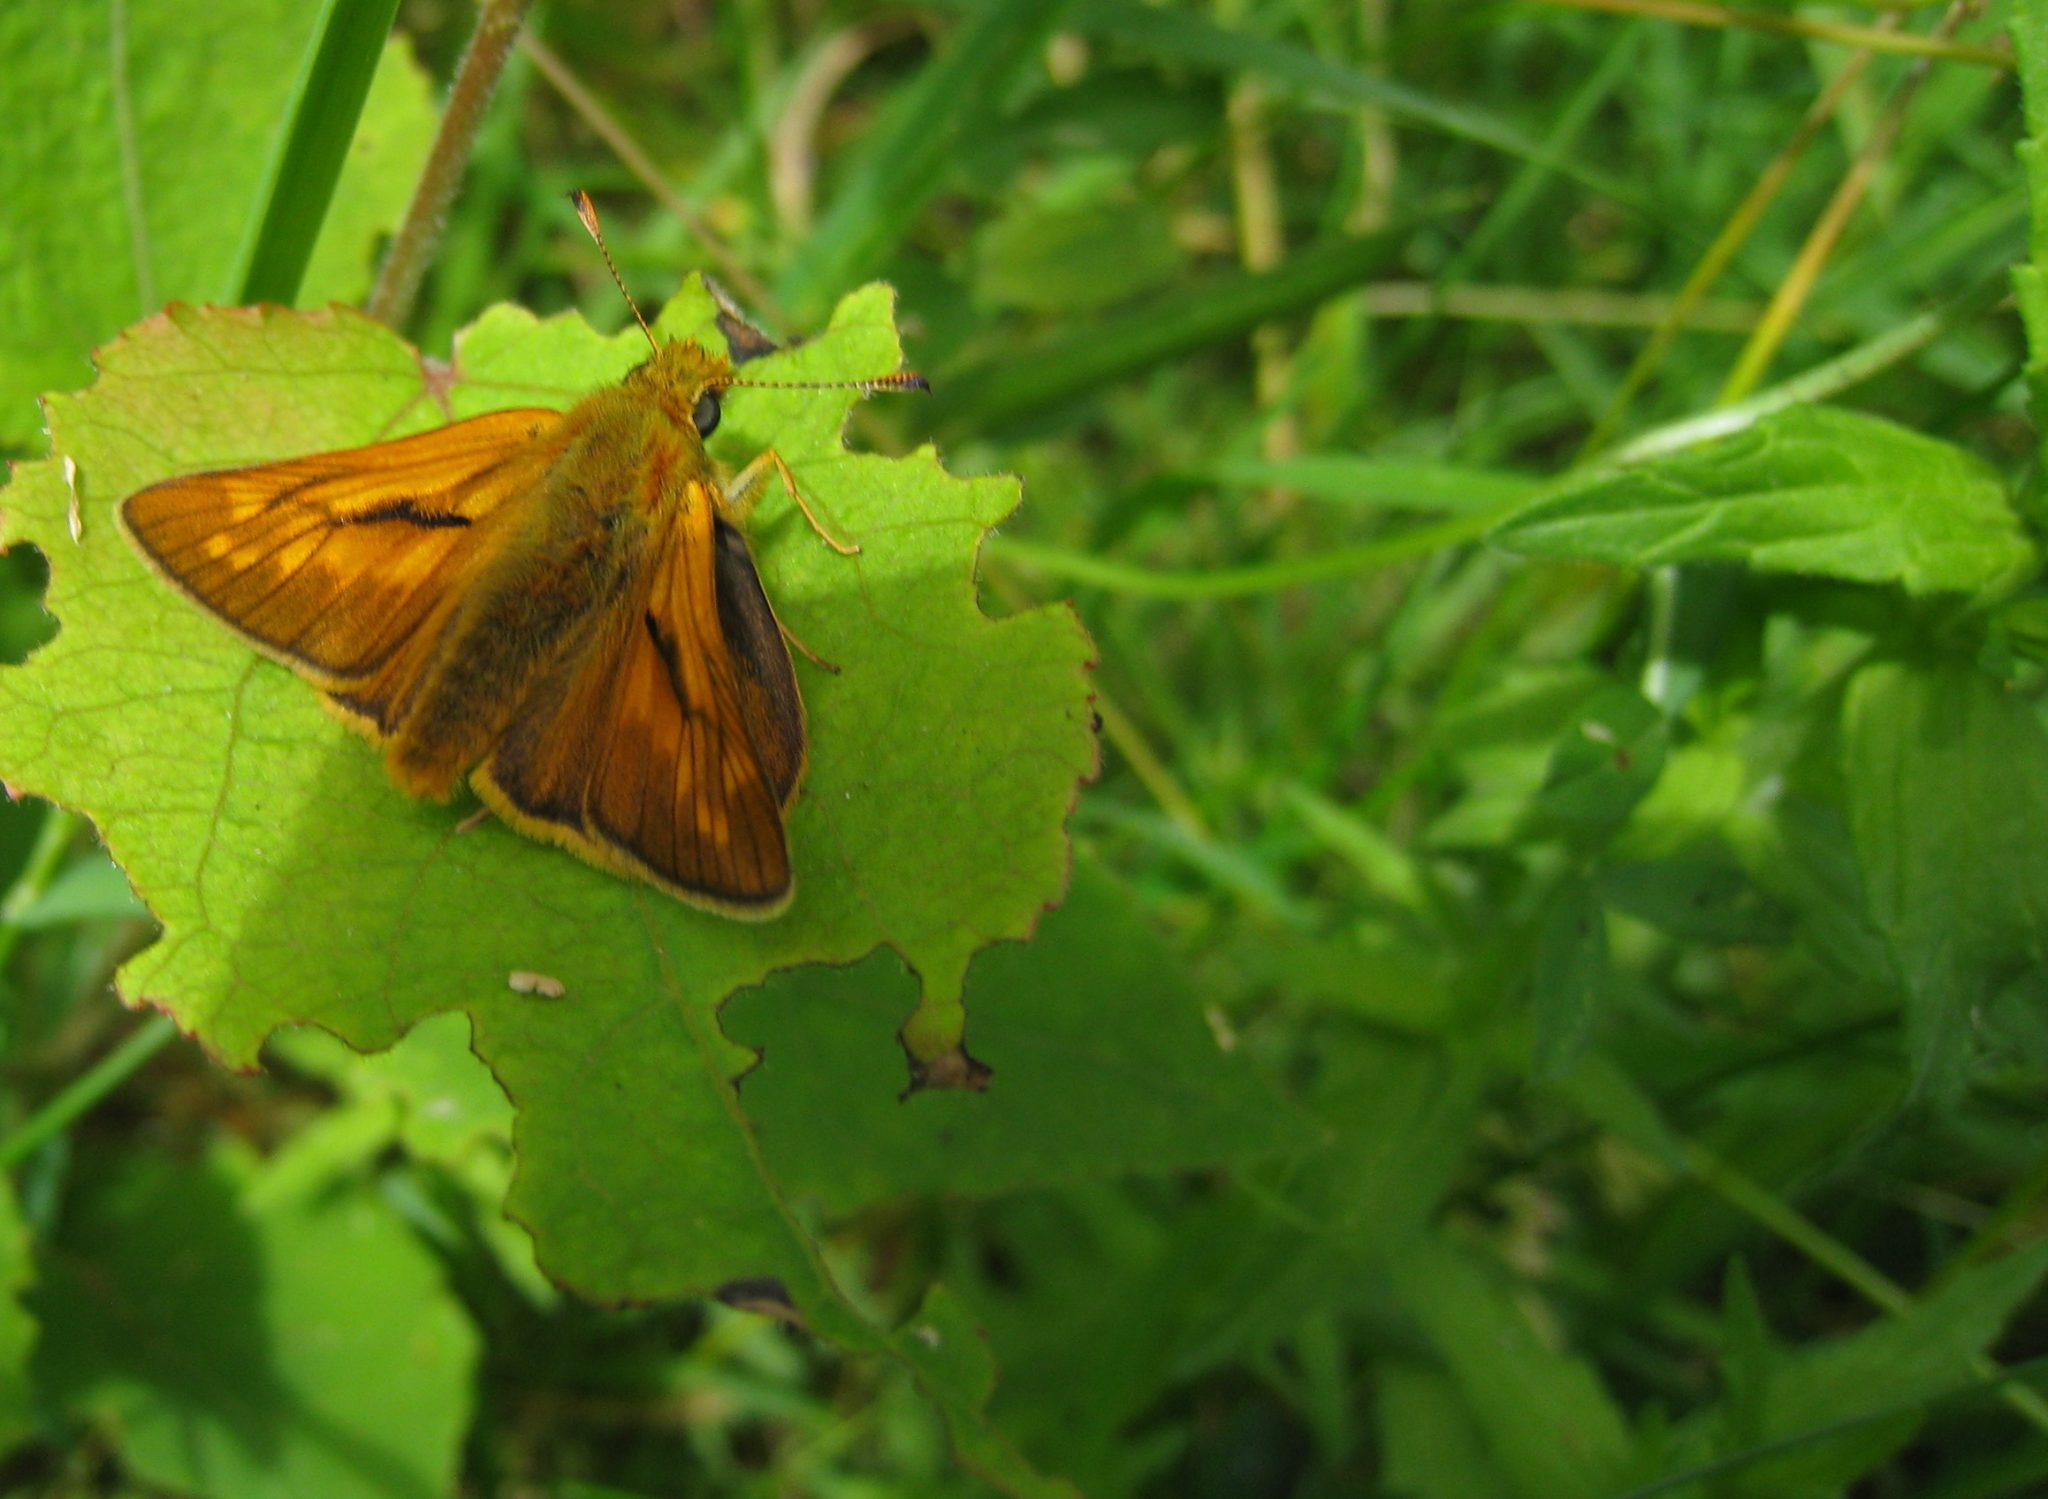 Photo of a large skipper butterfly sitting on a leaf